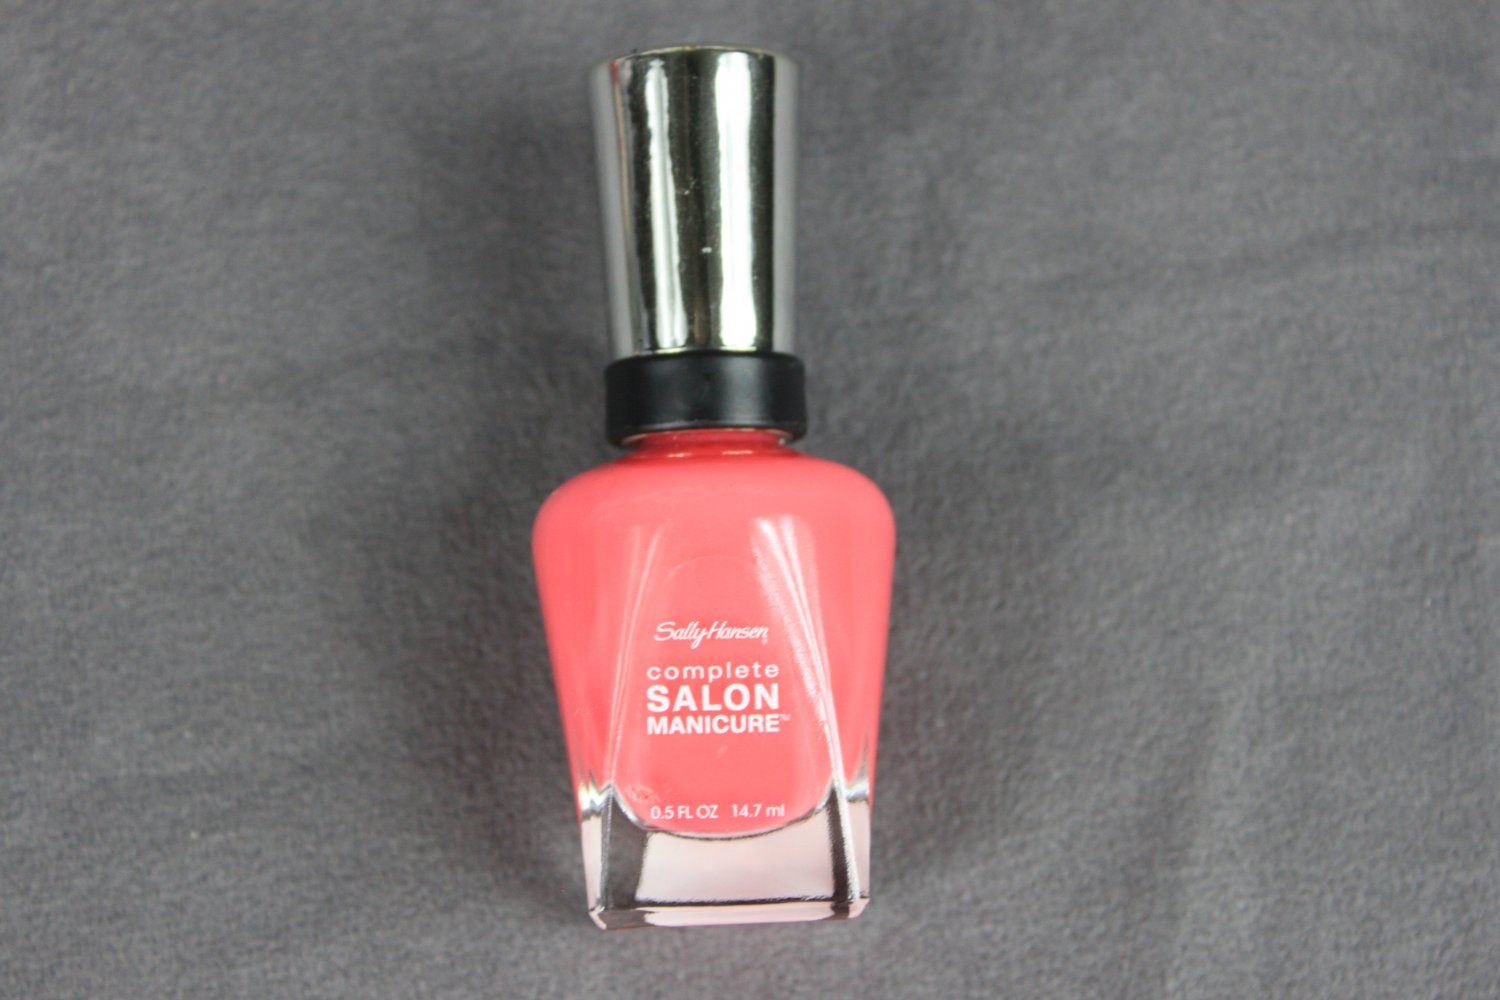 Sally Hansen GET JUICED Complete Salon Manicure Nail Polish